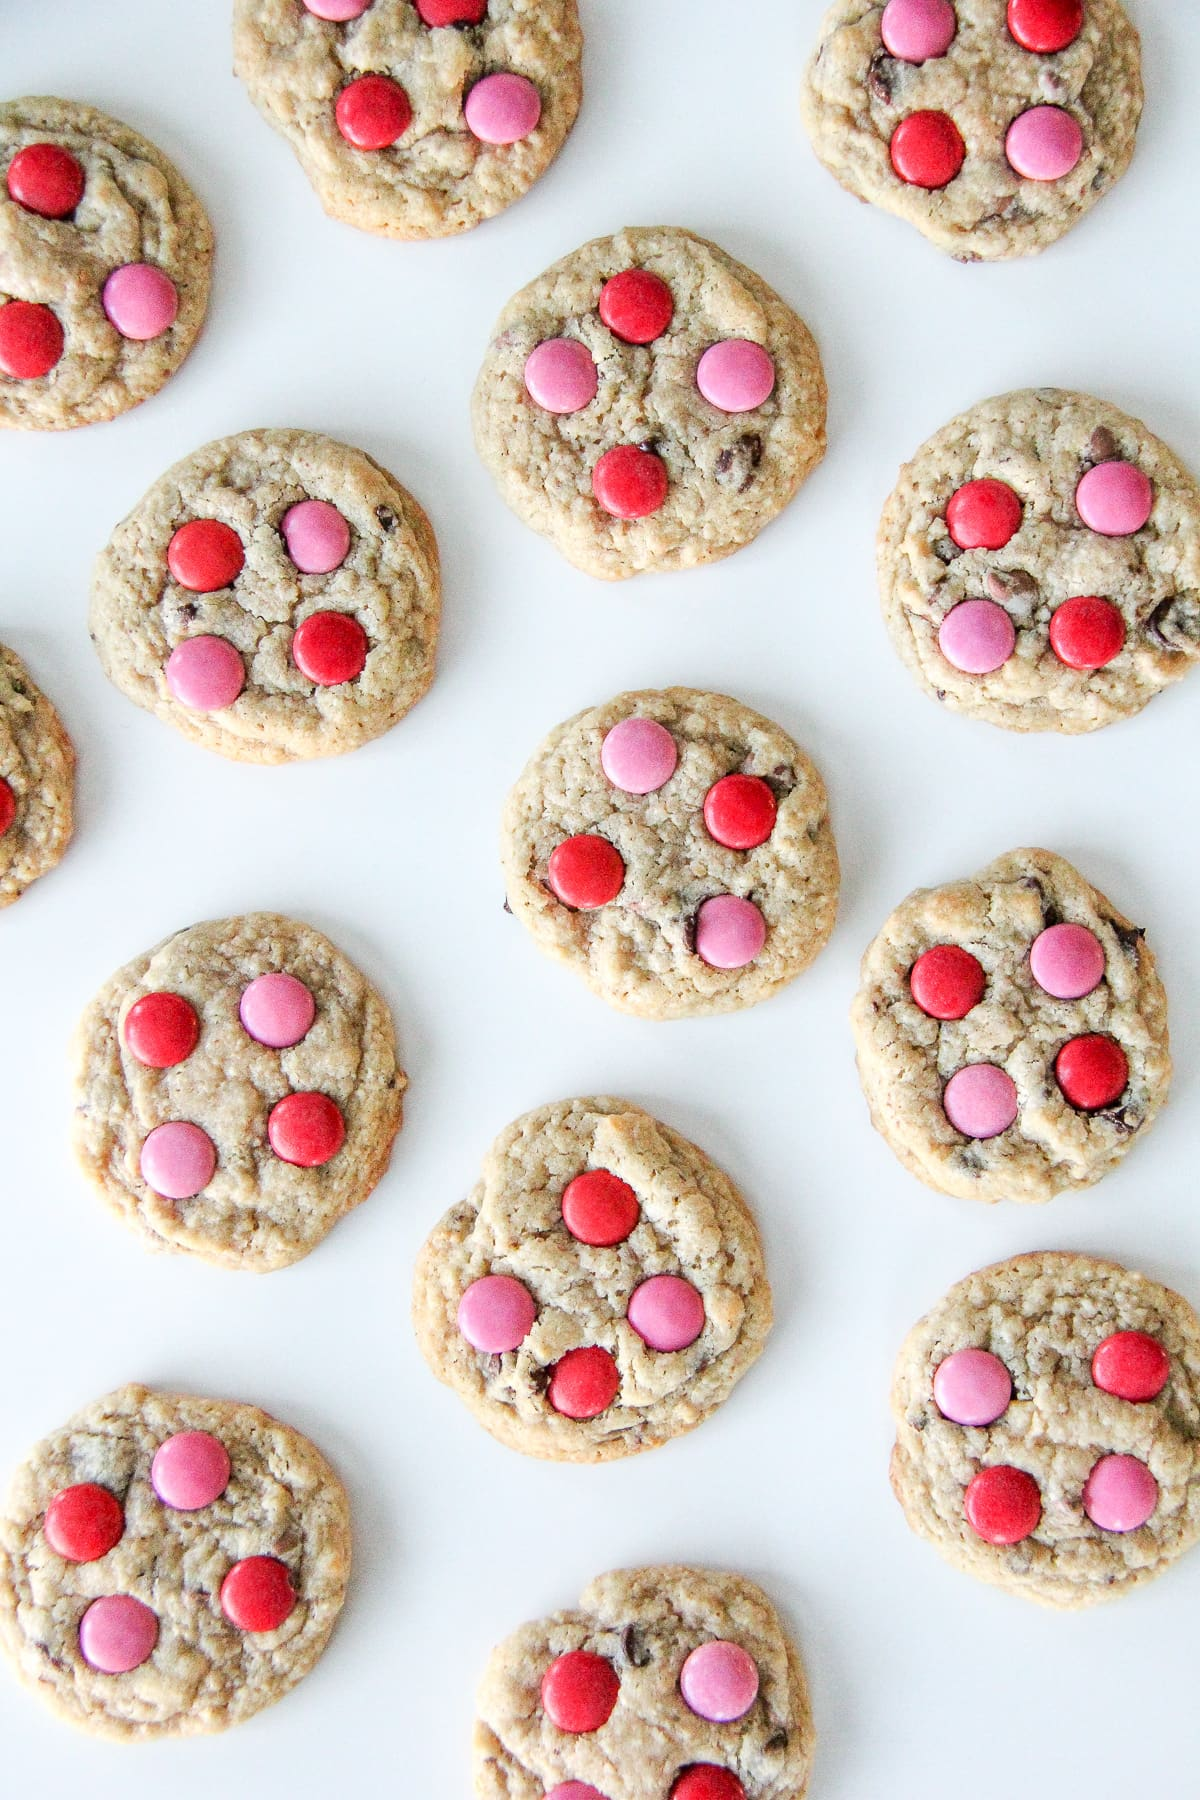 a top down view of chocolate chip cookies with red and pink smarties